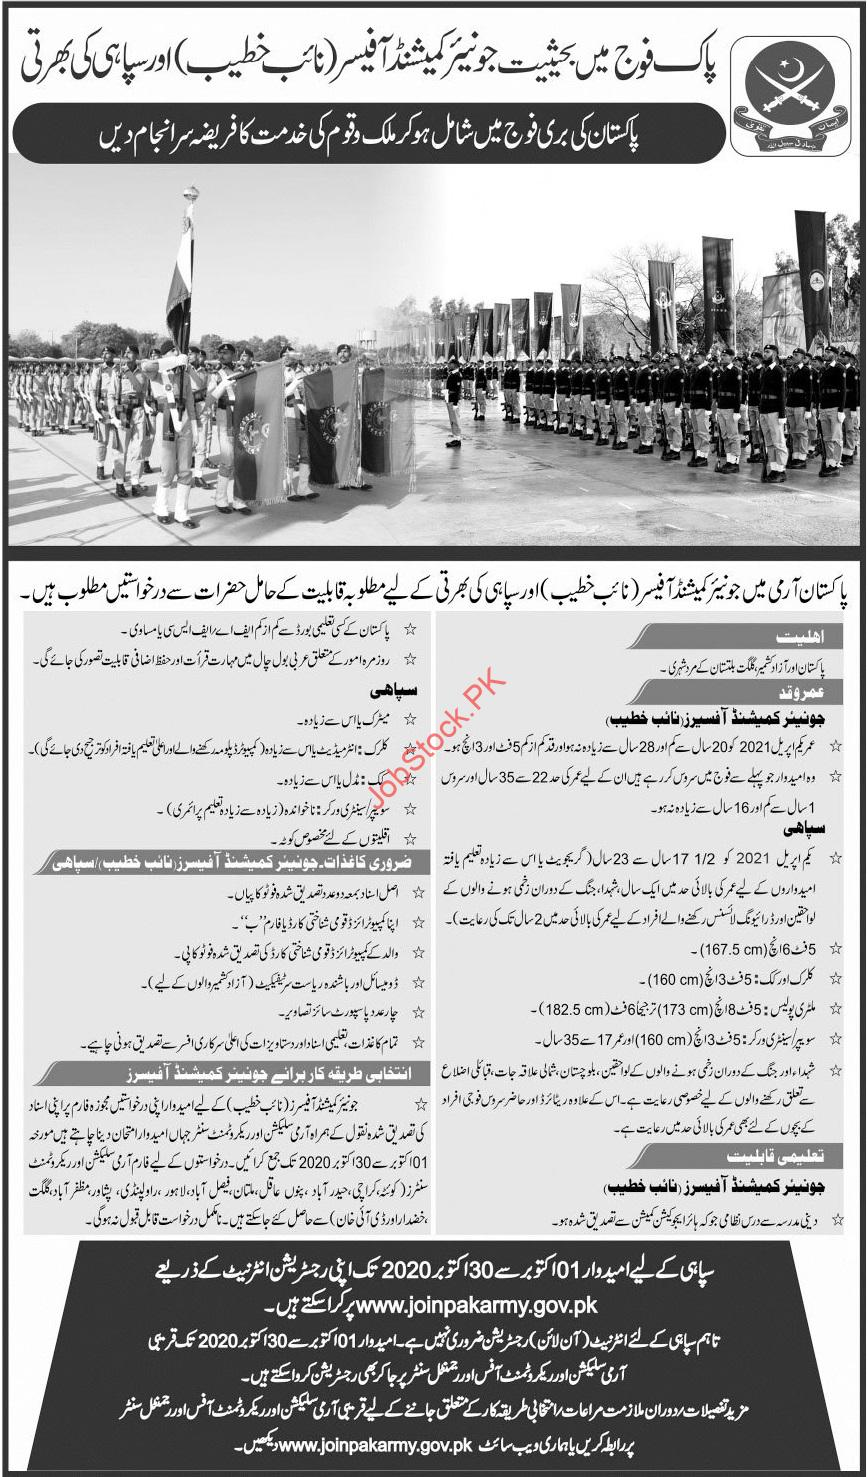 Join Pakistan Army As Commission Officer And Solders Jobs 2020